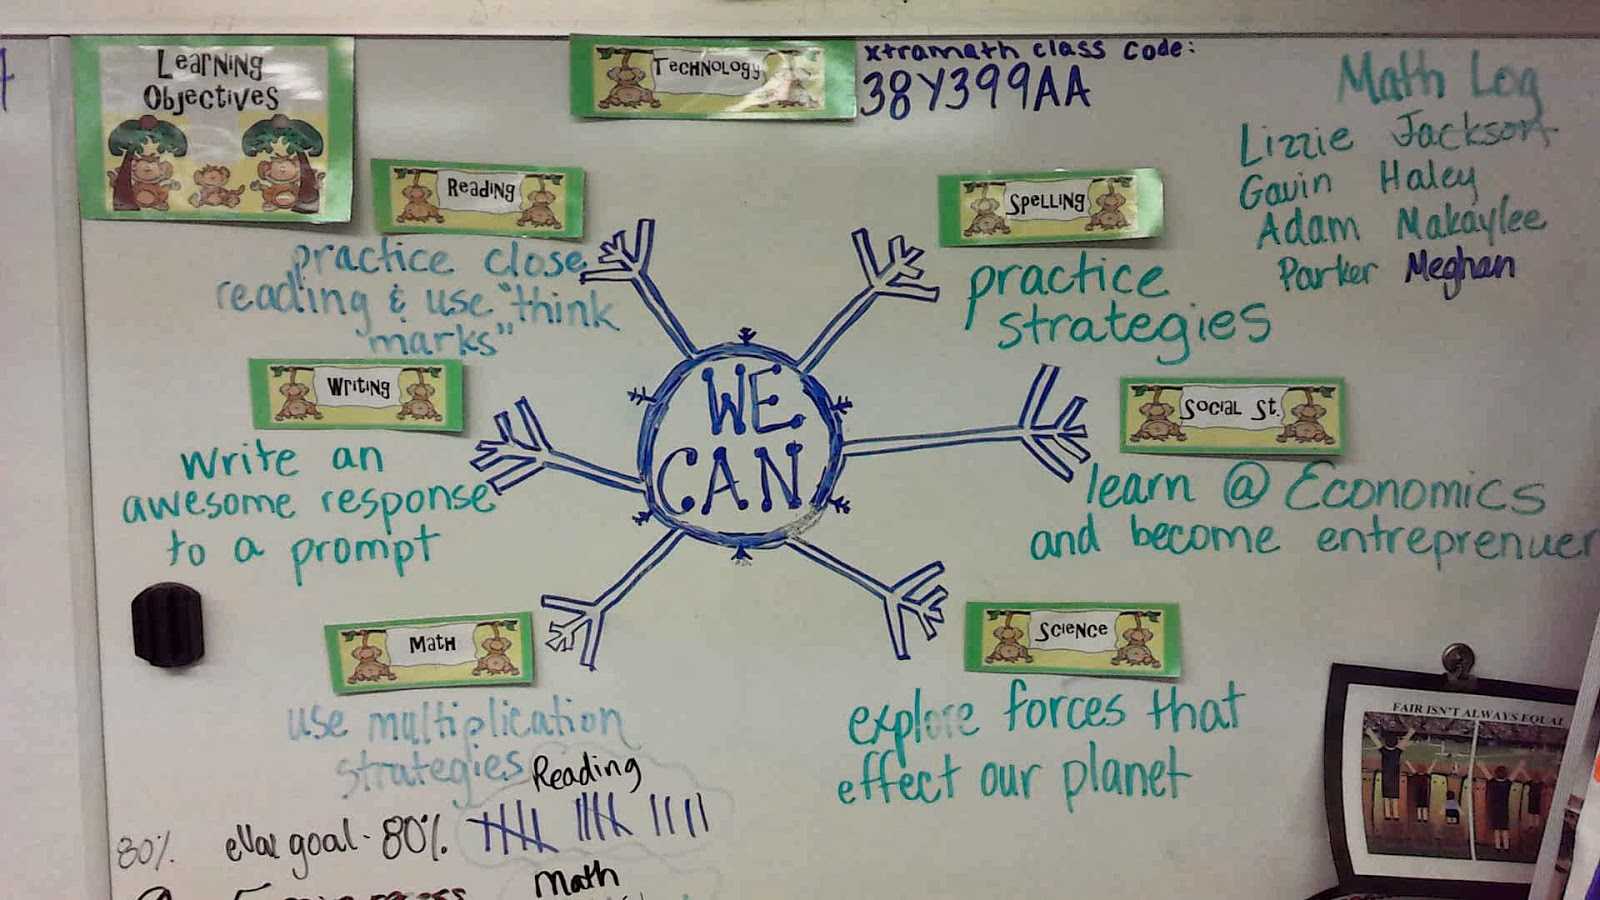 student learning objectives 3rd grade